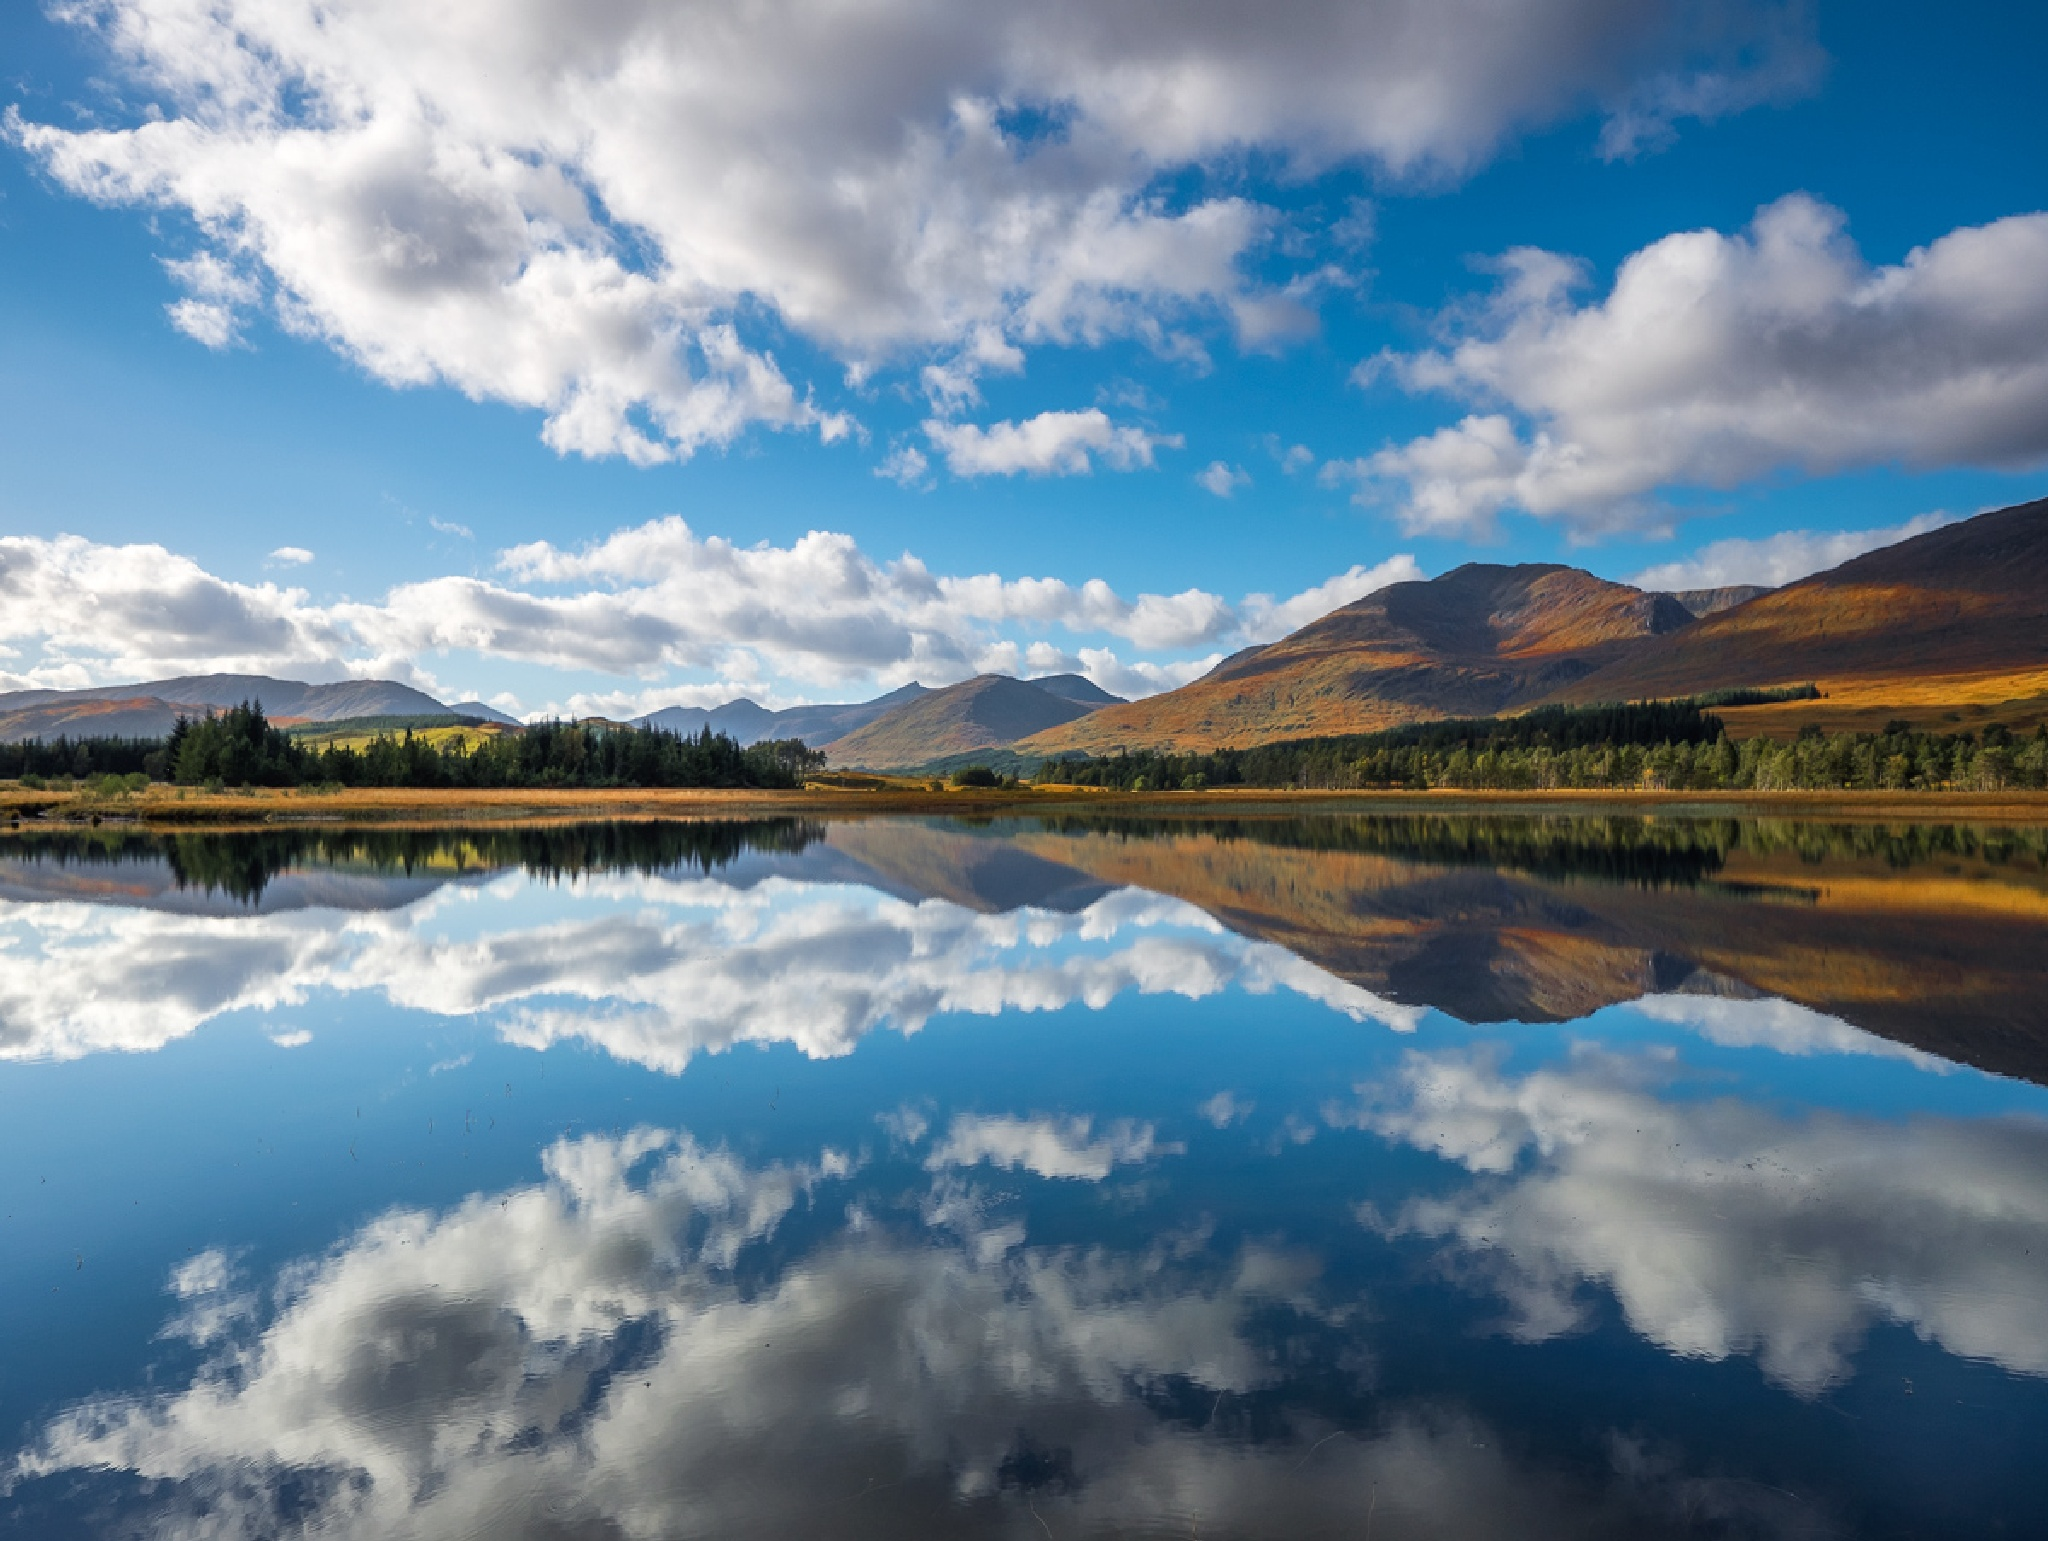 Reflection Perfection by hwatt